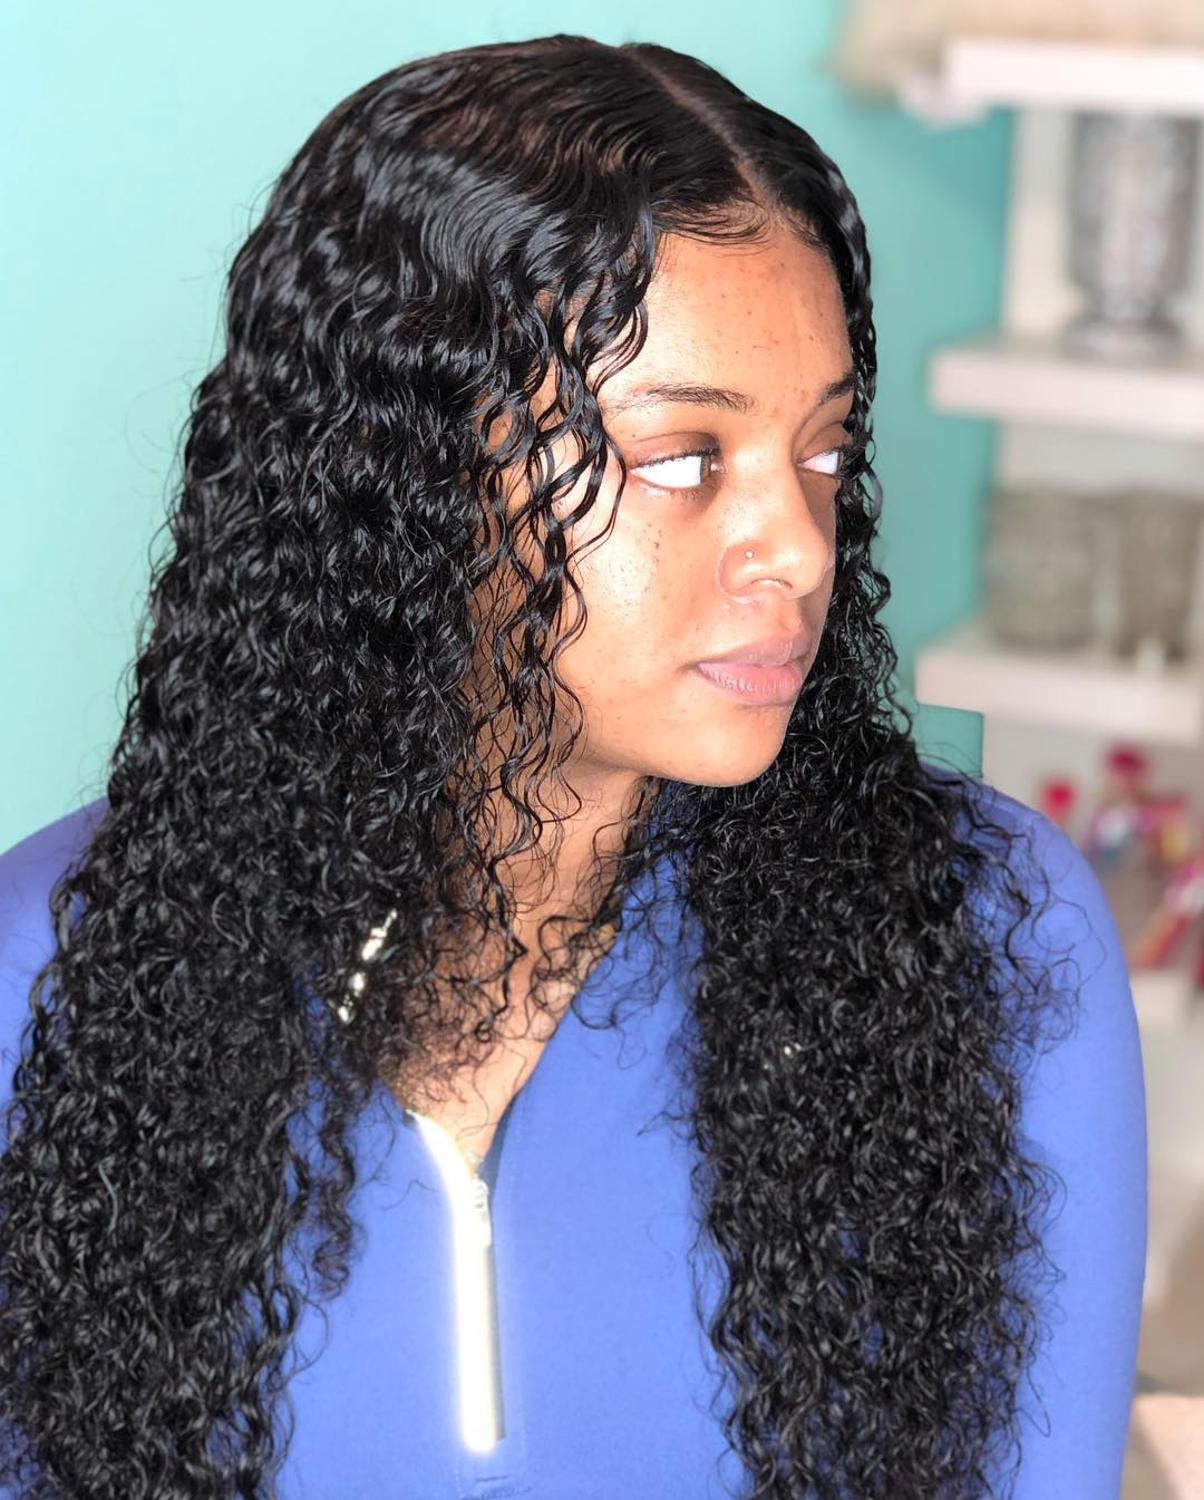 Luvin Curly 250 Density Lace Front Human Hair Wigs Deep Wave Remy Hair Short Bob Wigs For Black Women Long Lace Frontal Wig